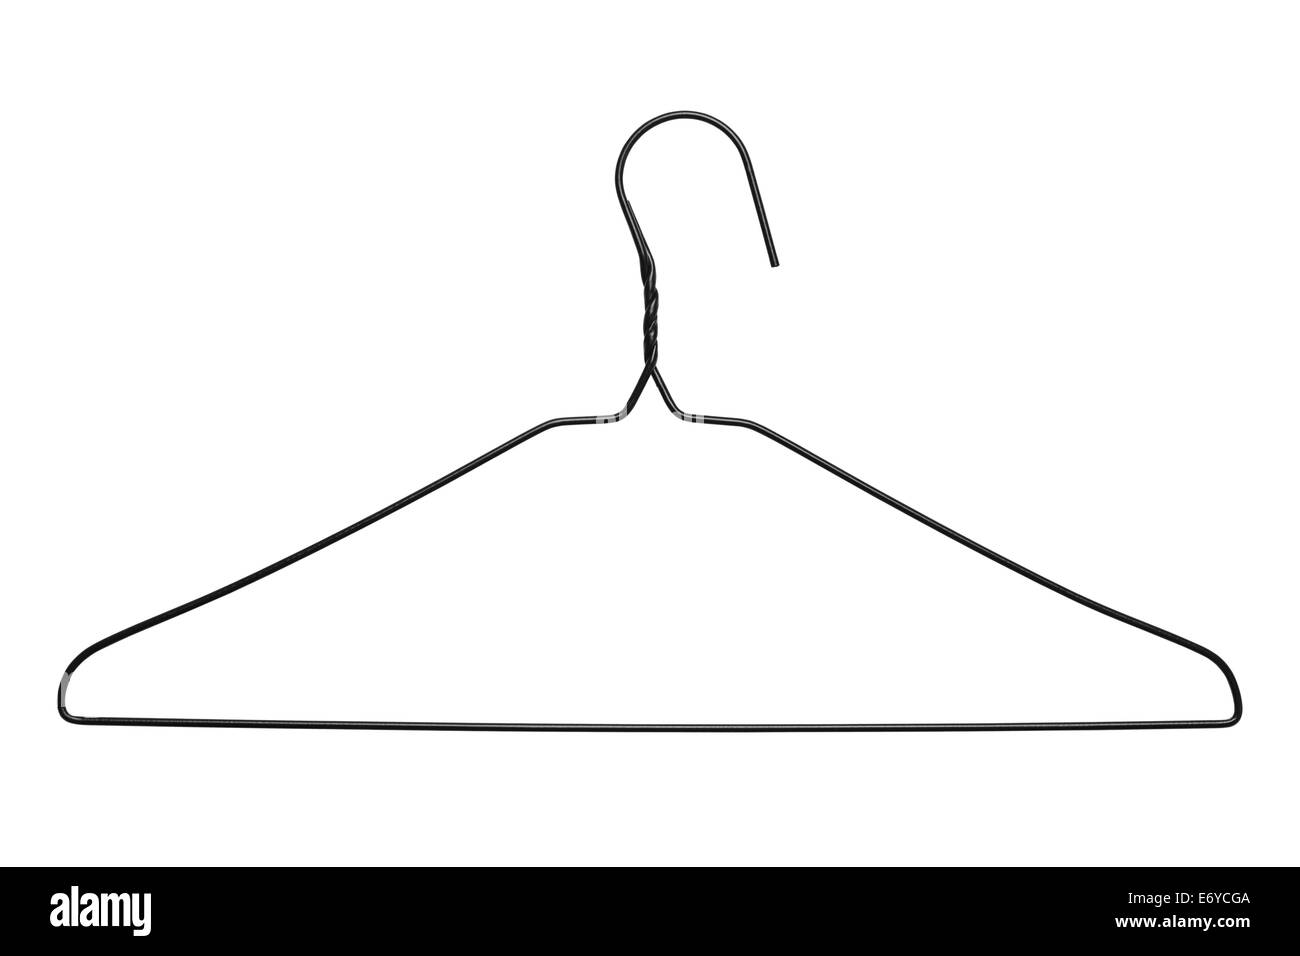 Thin Black WIre Clothes Hanger Isolated on White Background. - Stock Image